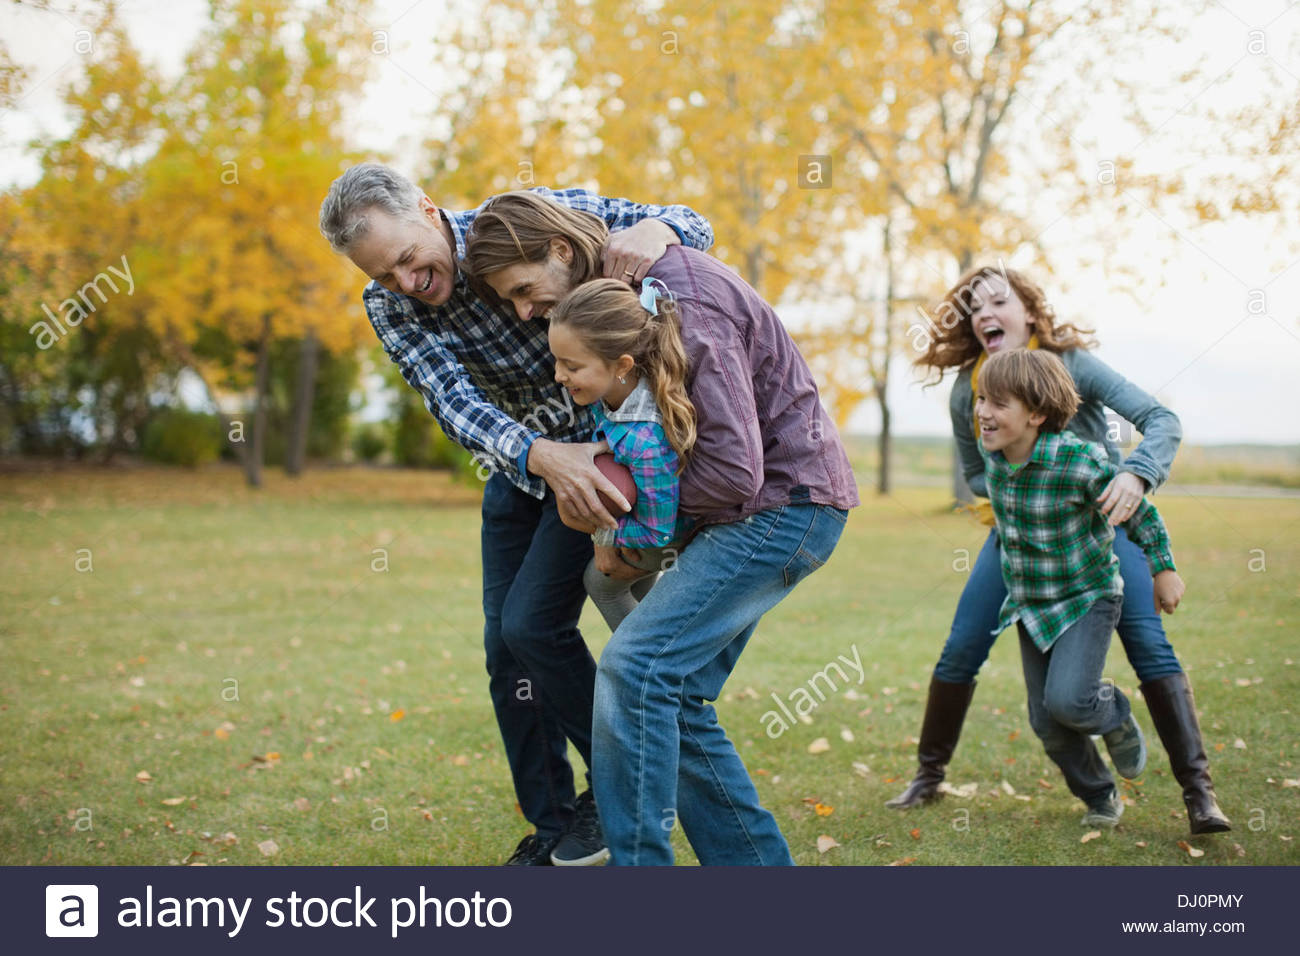 Multi-generation family playing American football in park - Stock Image